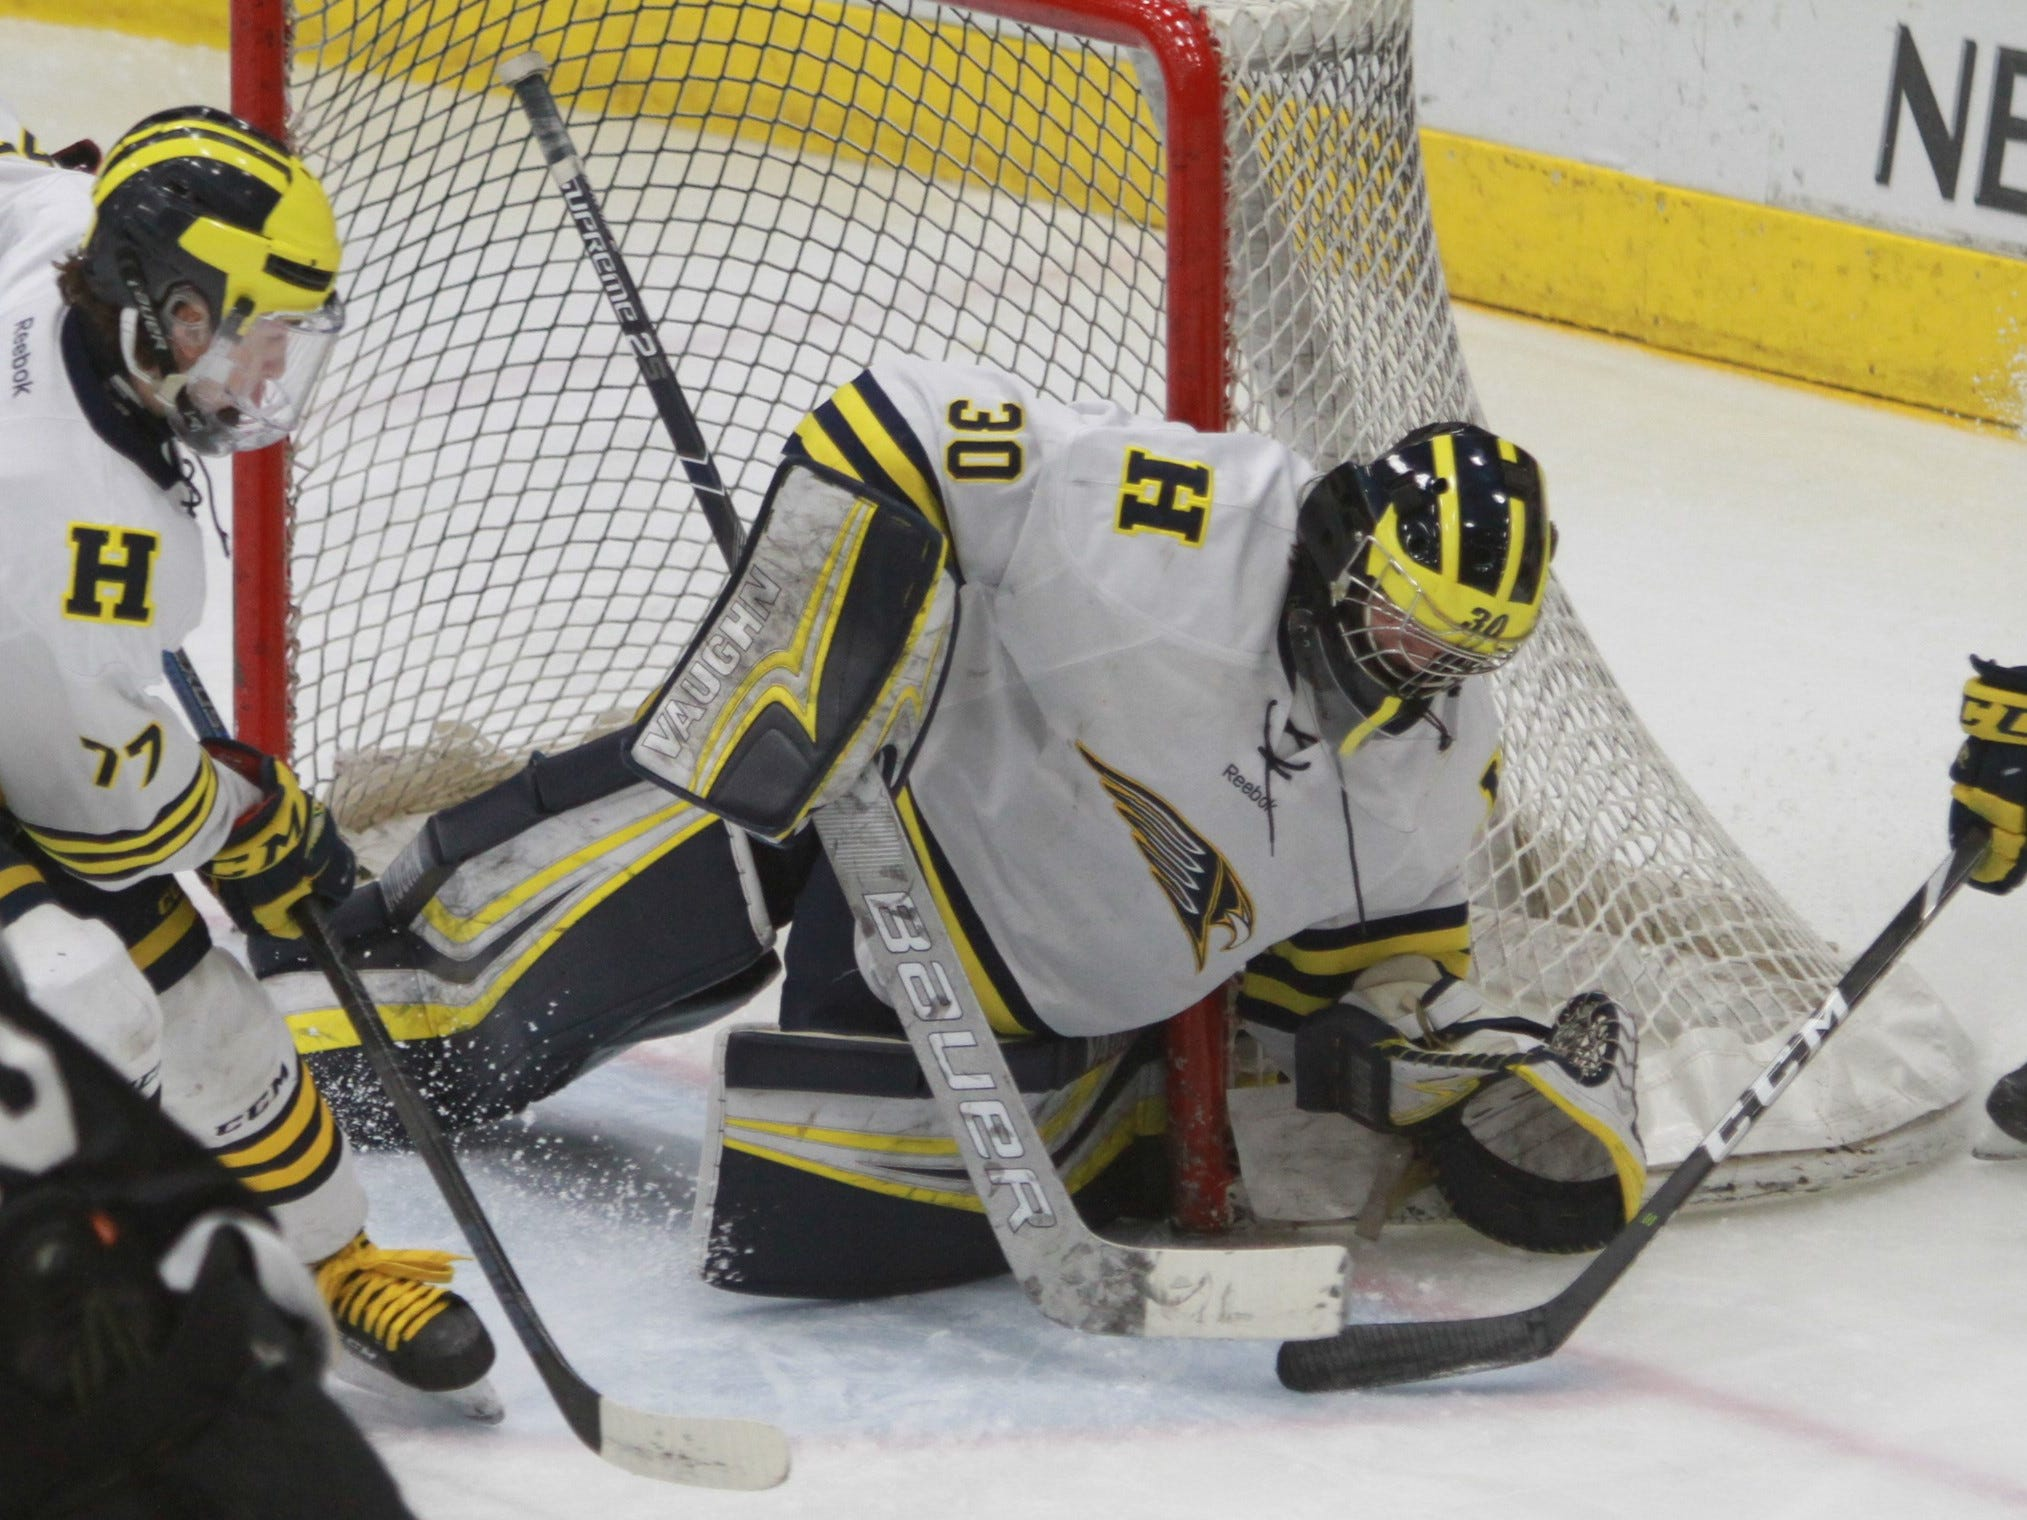 Hartland goalie Brett Tome covers up a loose puck at the side of the net during a 6-0 victory over Forest Hills Eastern in the state Division 2 hockey quarterfinals in Flint on Tuesday, March 5, 2019.